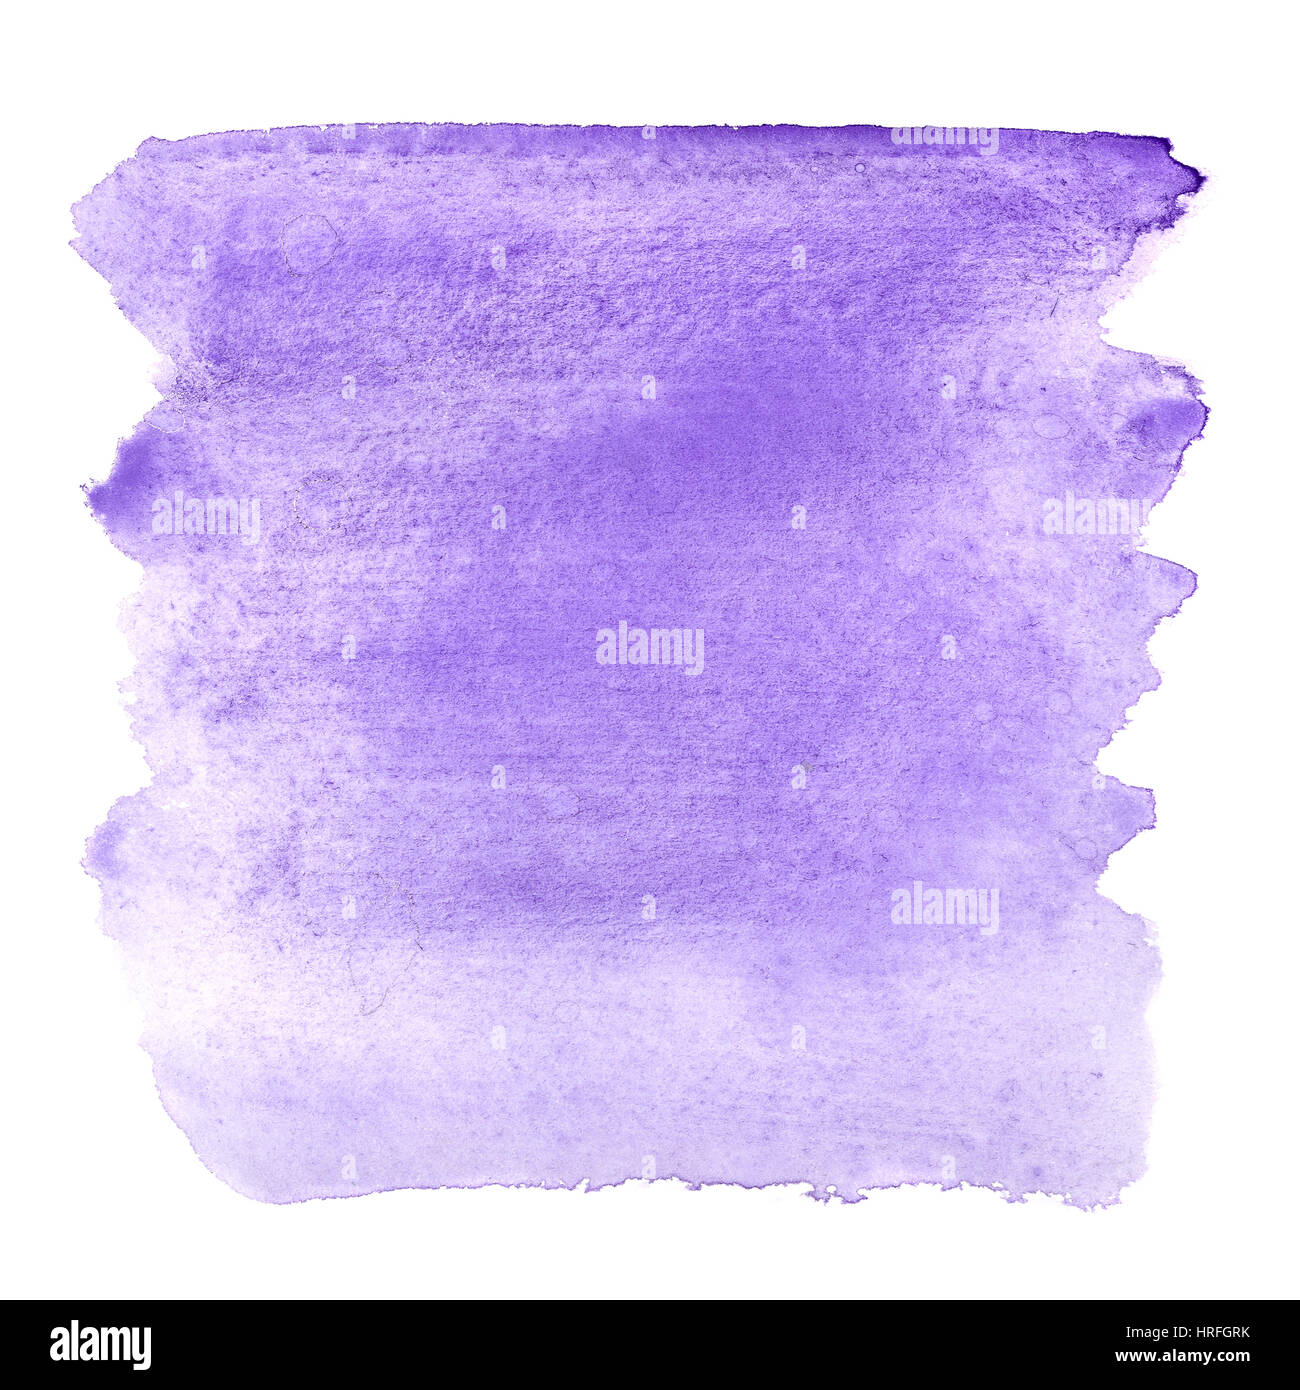 Blue violet watercolor brush strokes - abstract background - Stock Image